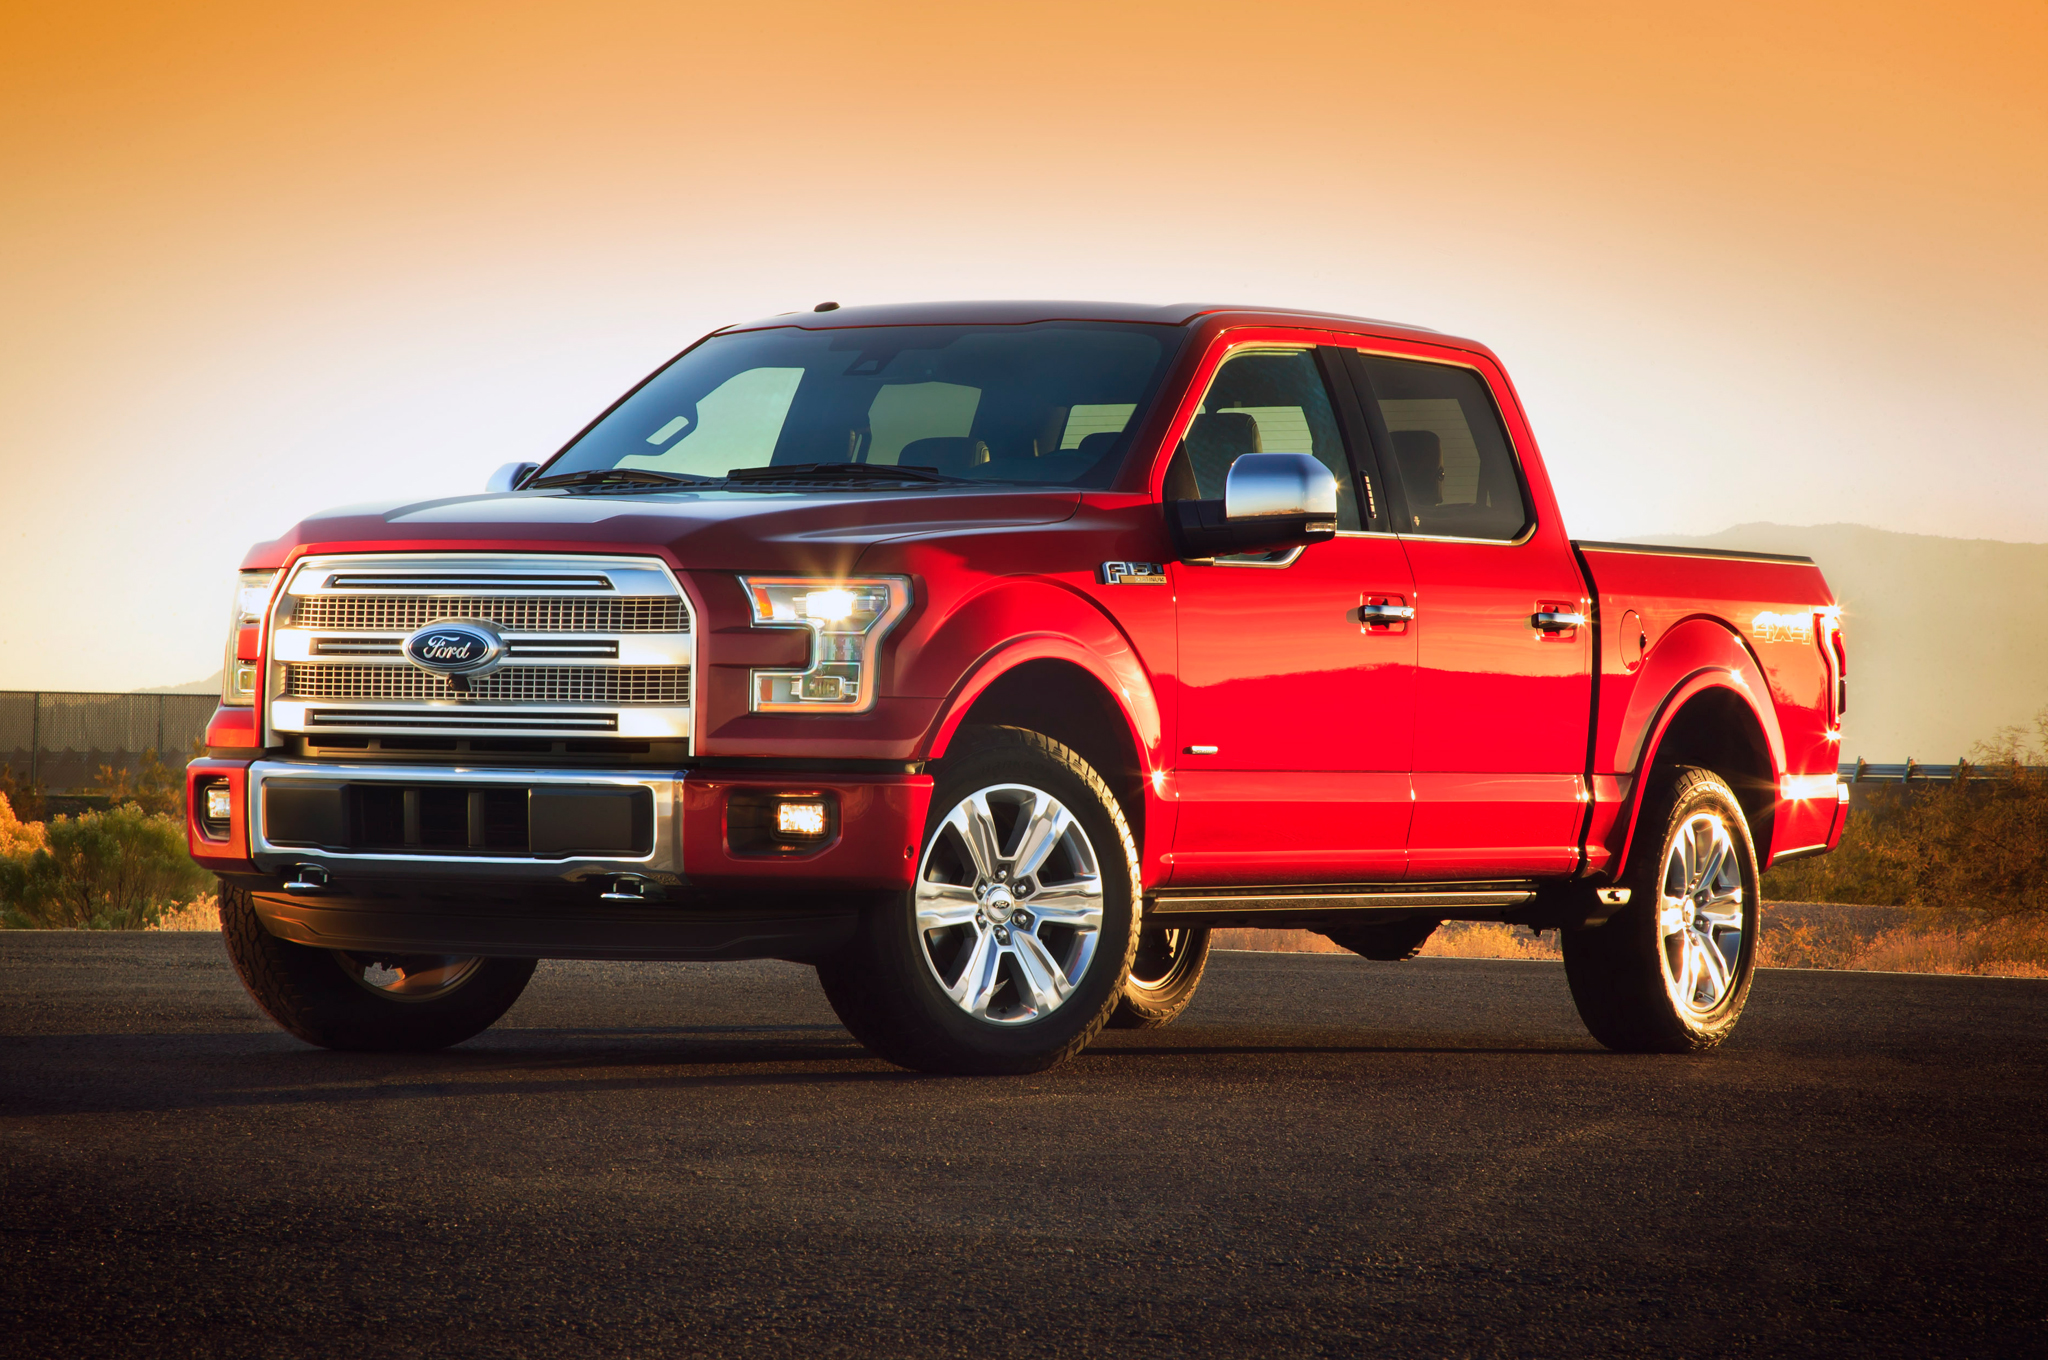 Report: 75 Percent of Trucks will have Aluminum Bodies by 2025